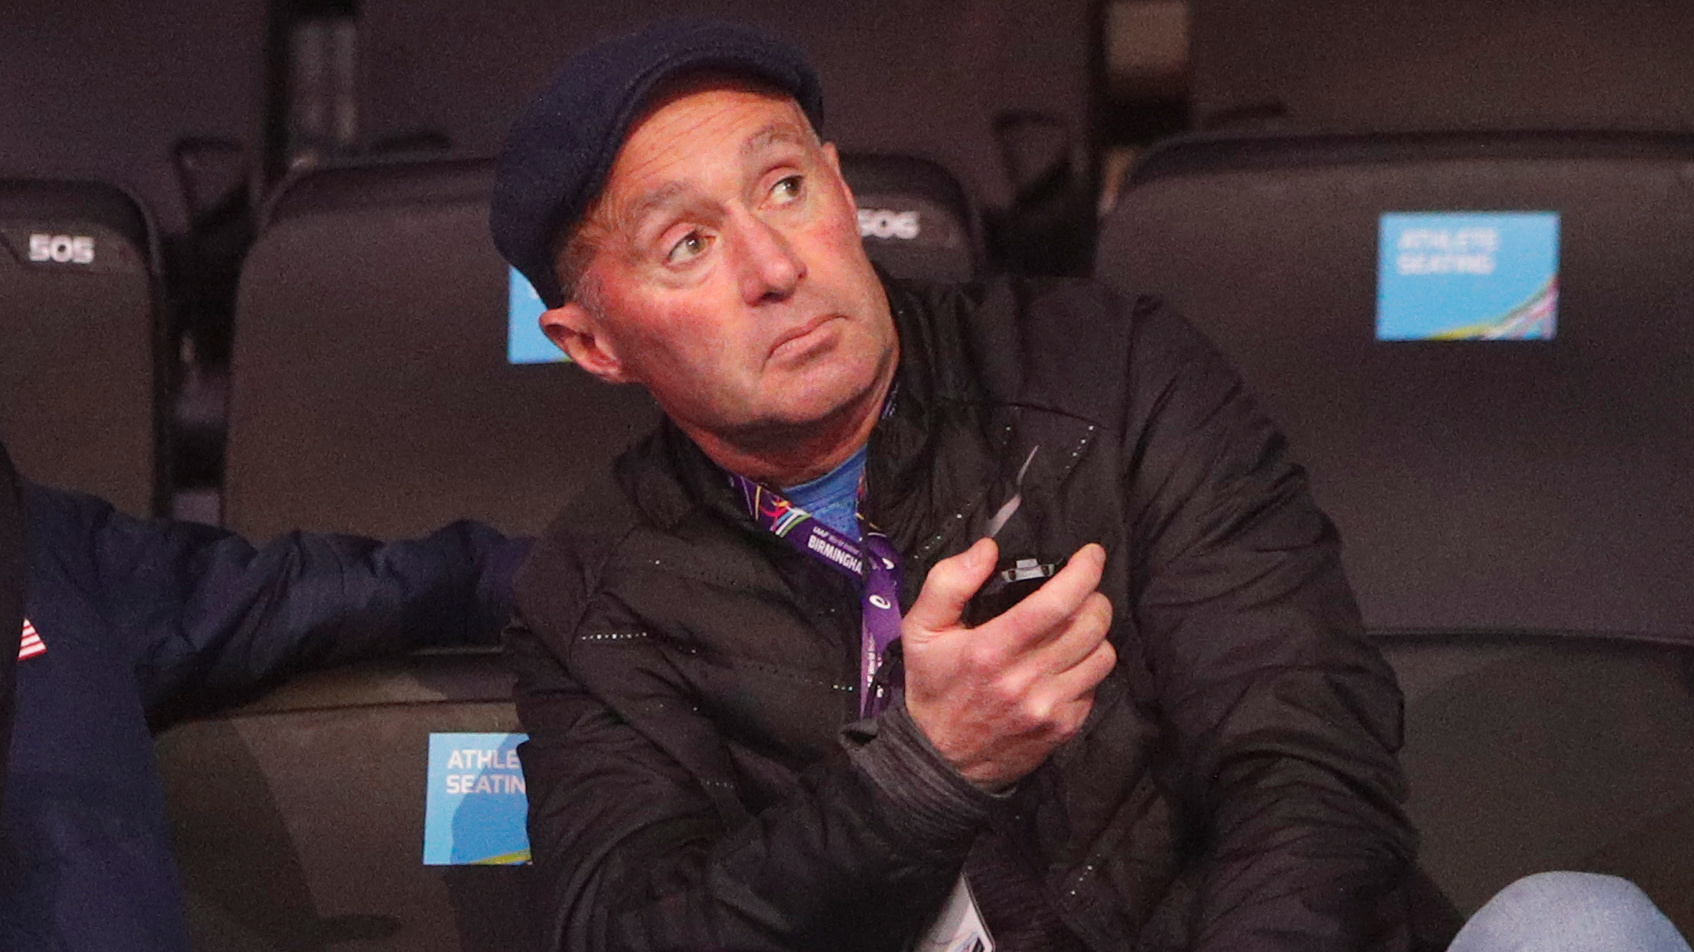 Nike Coach Alberto Salazar Is Hit With 4-Year Doping Ban